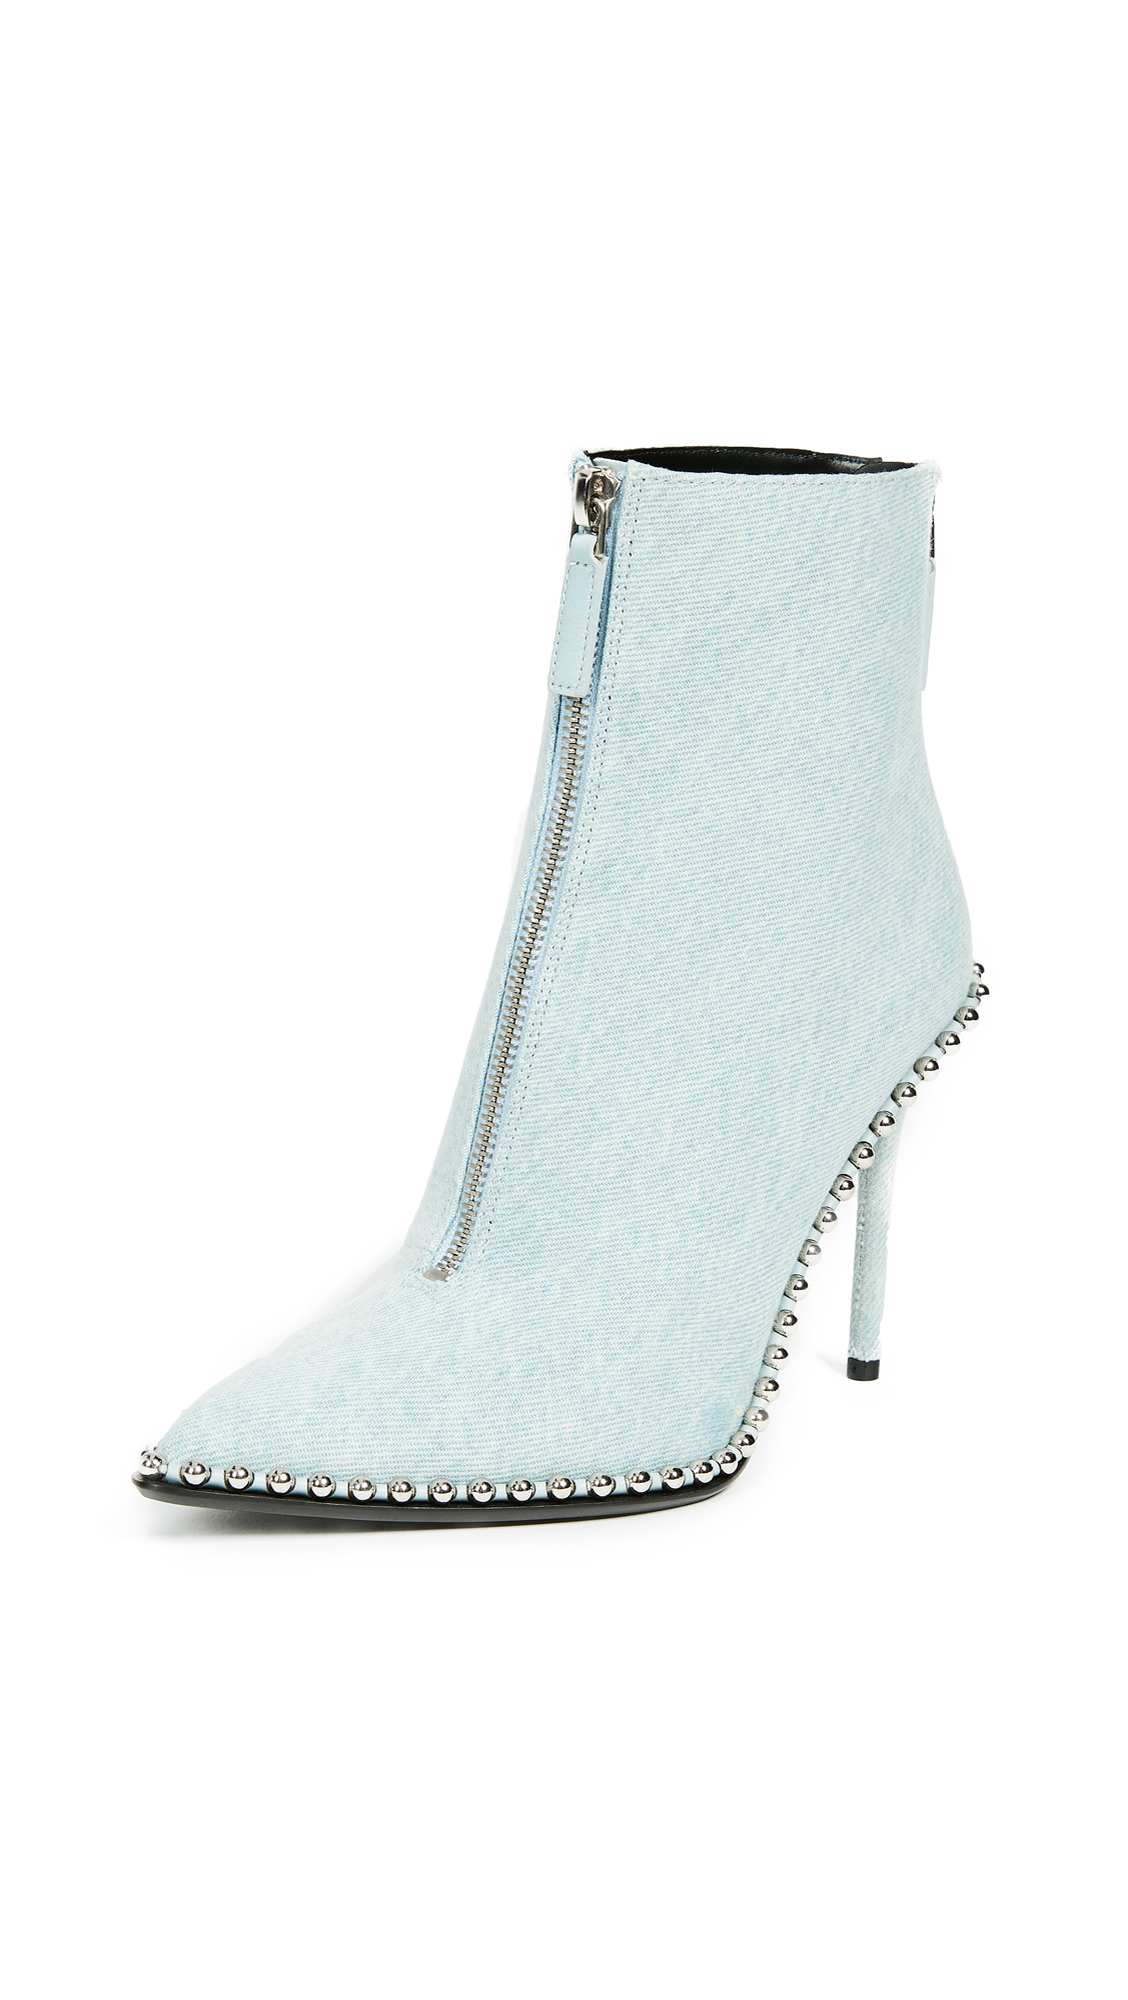 Alexander Wang Eri Booties - Blue